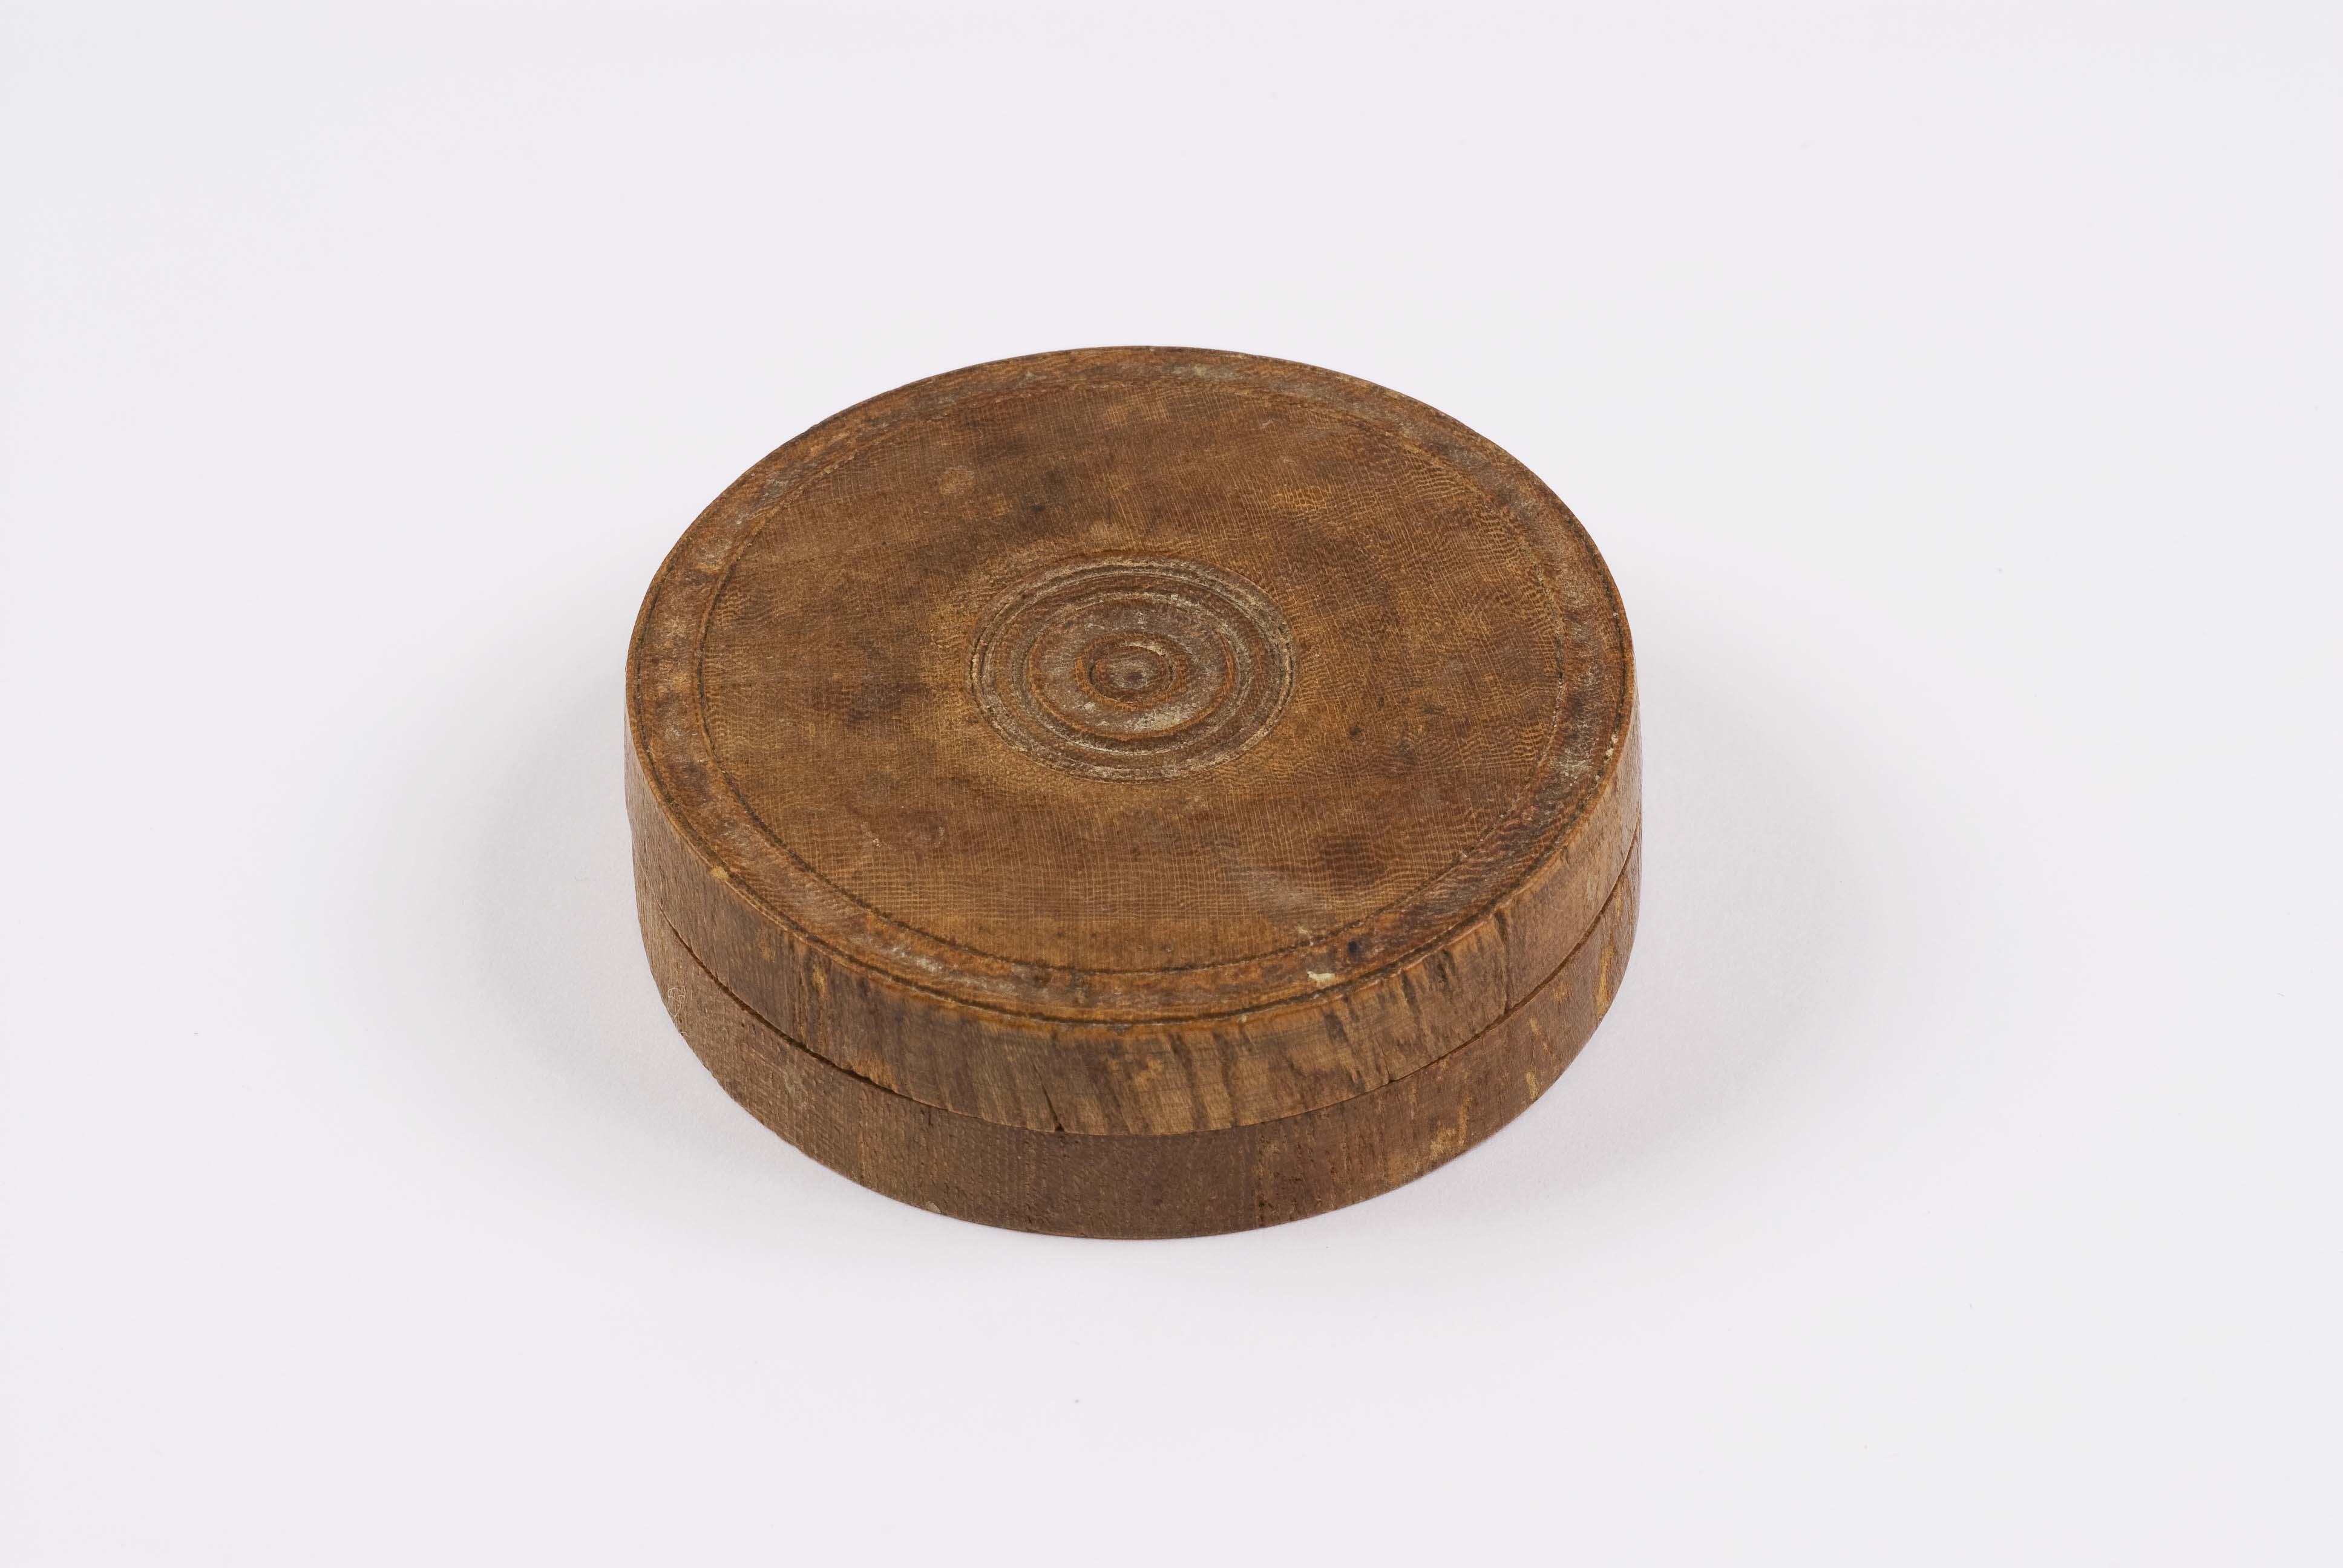 Box made from the wood of the Great Elm, witness to the Treaty of Friendship between Tamenend and Penn